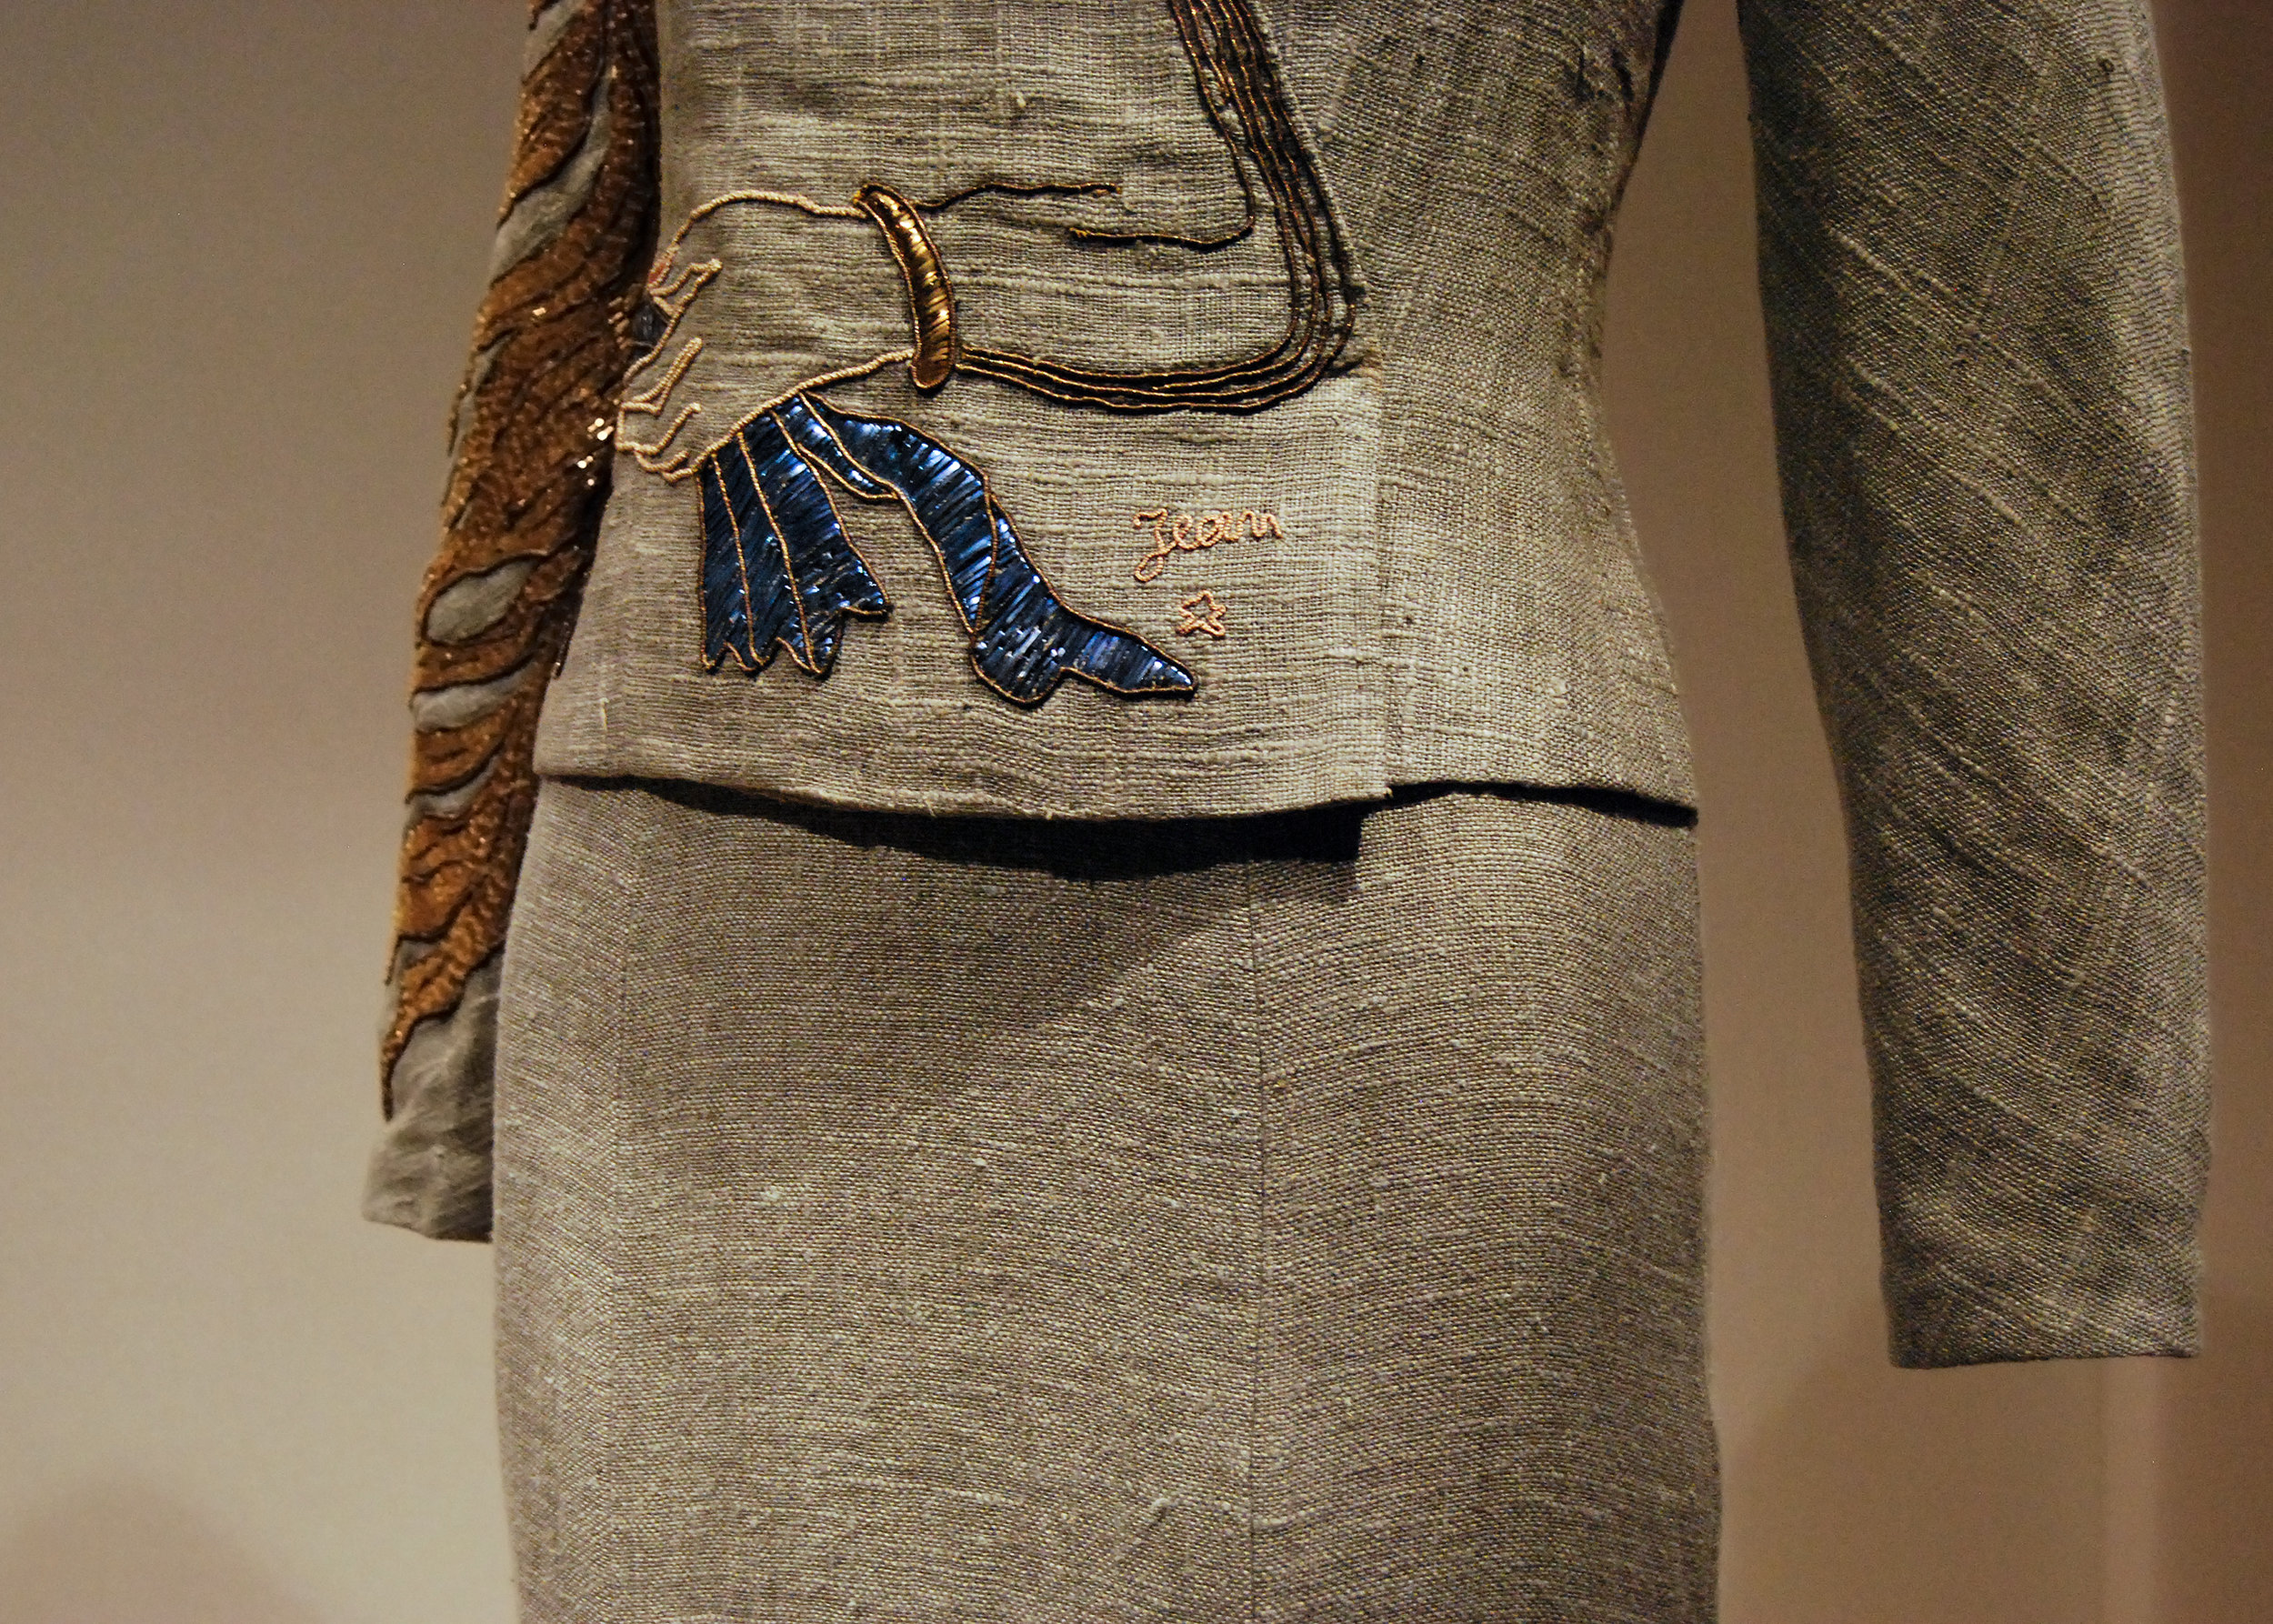 Elsa Schiaparelli , Evening Jacket, autumn 1937, haute couture (in collaboration with Jean Cocteau and House of Lesage)